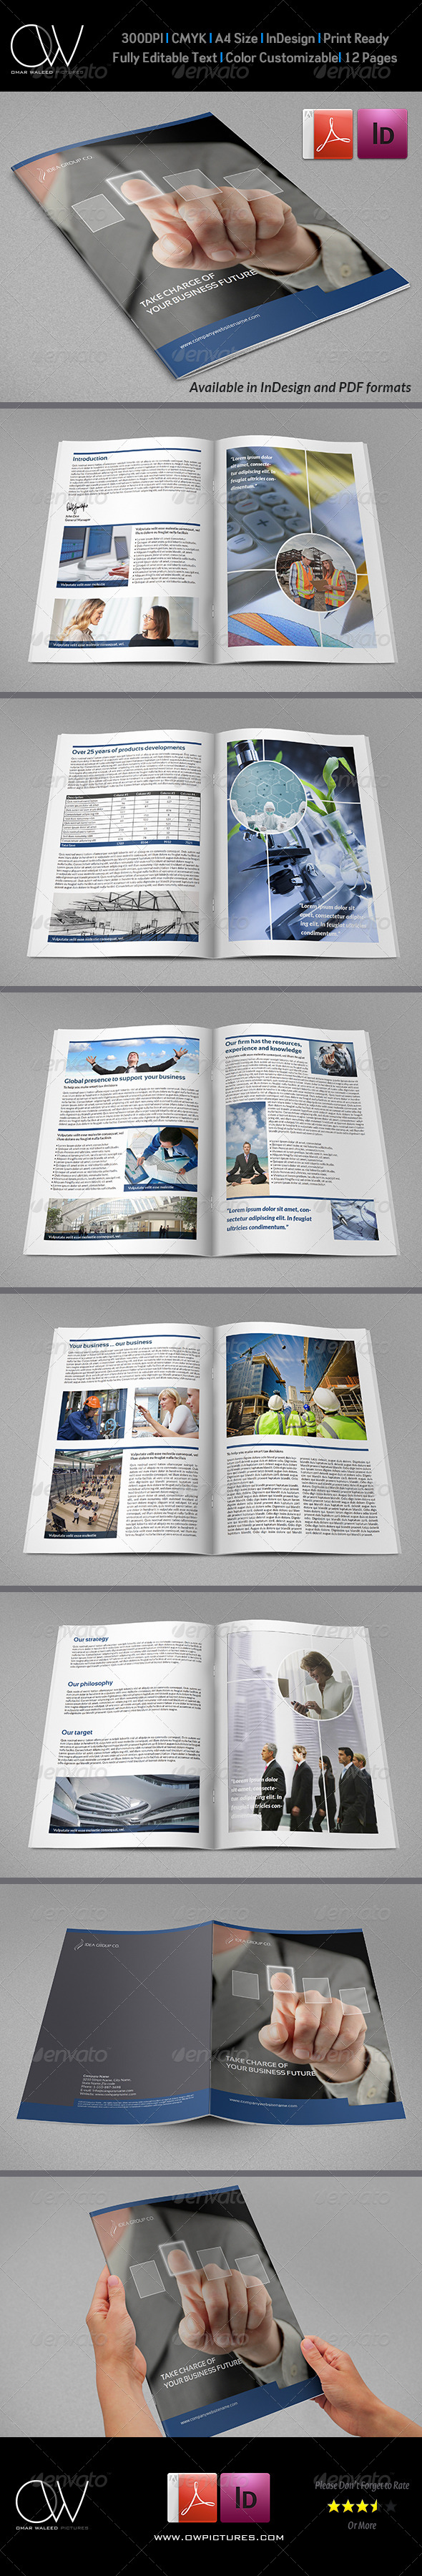 GraphicRiver Corporate Brochure Template Vol.22 12 Pages 6680966